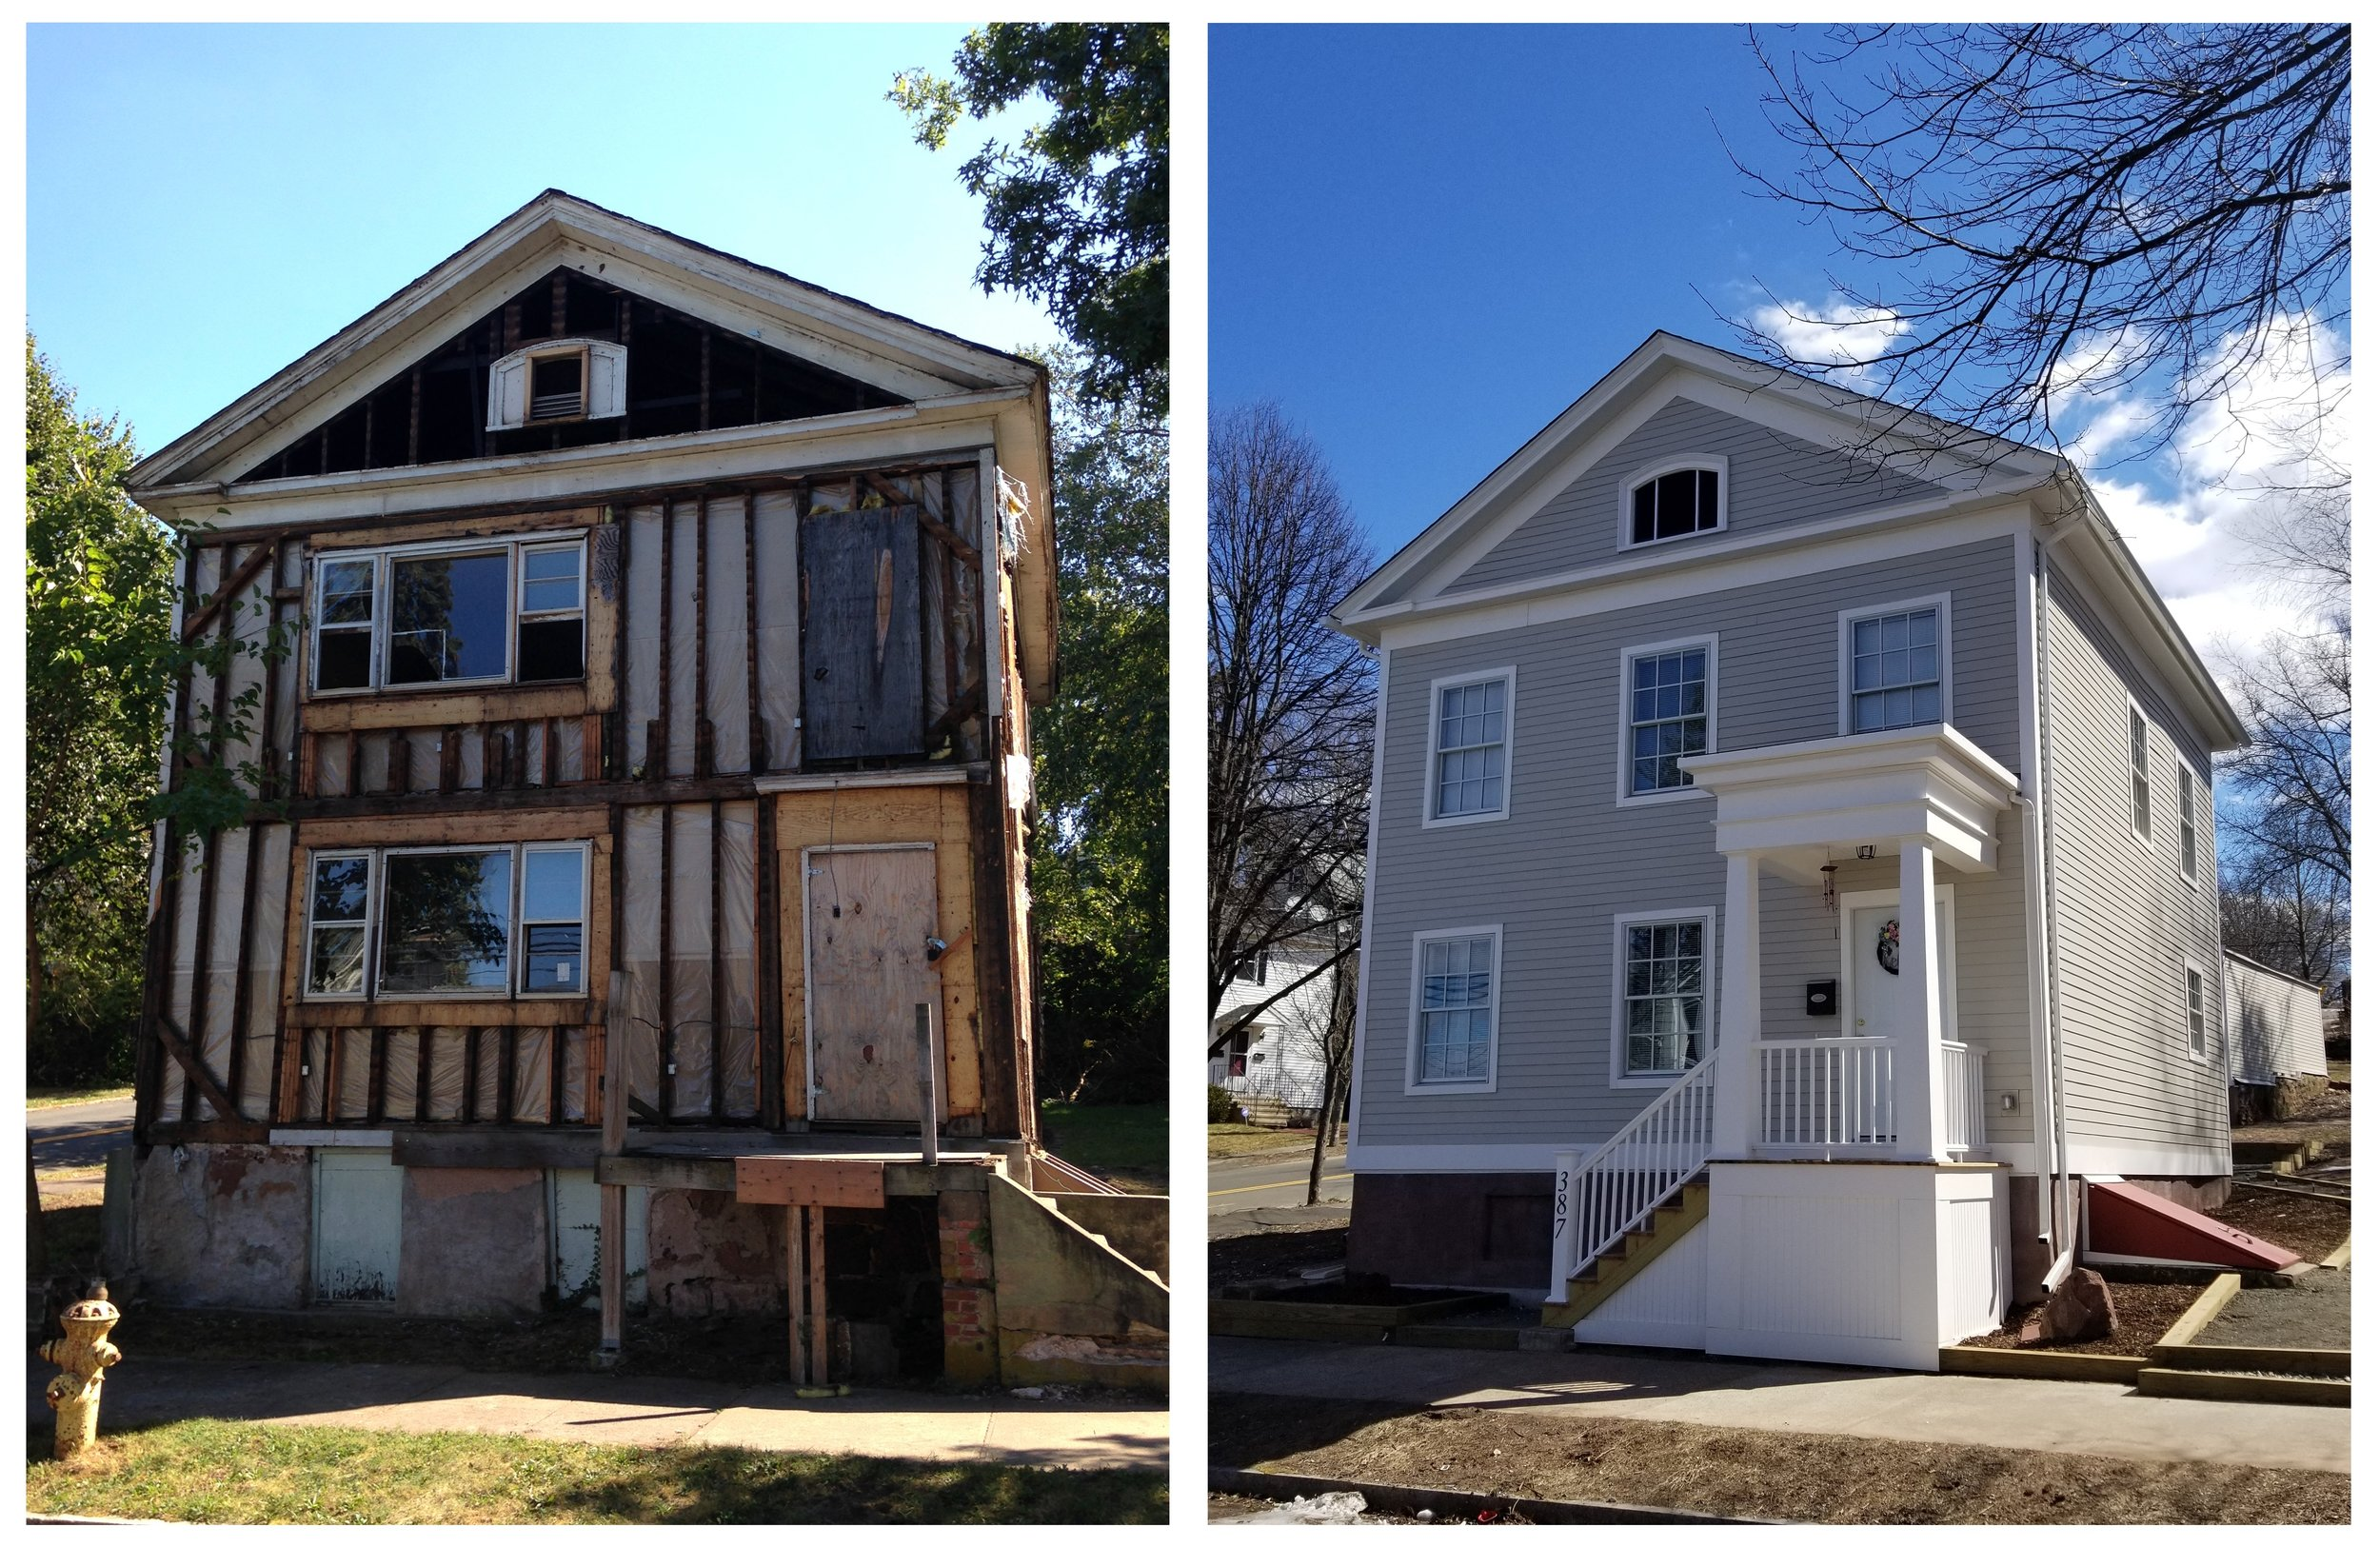 Before and after Habitat for Humanity's restoration of 387 Lenox Street